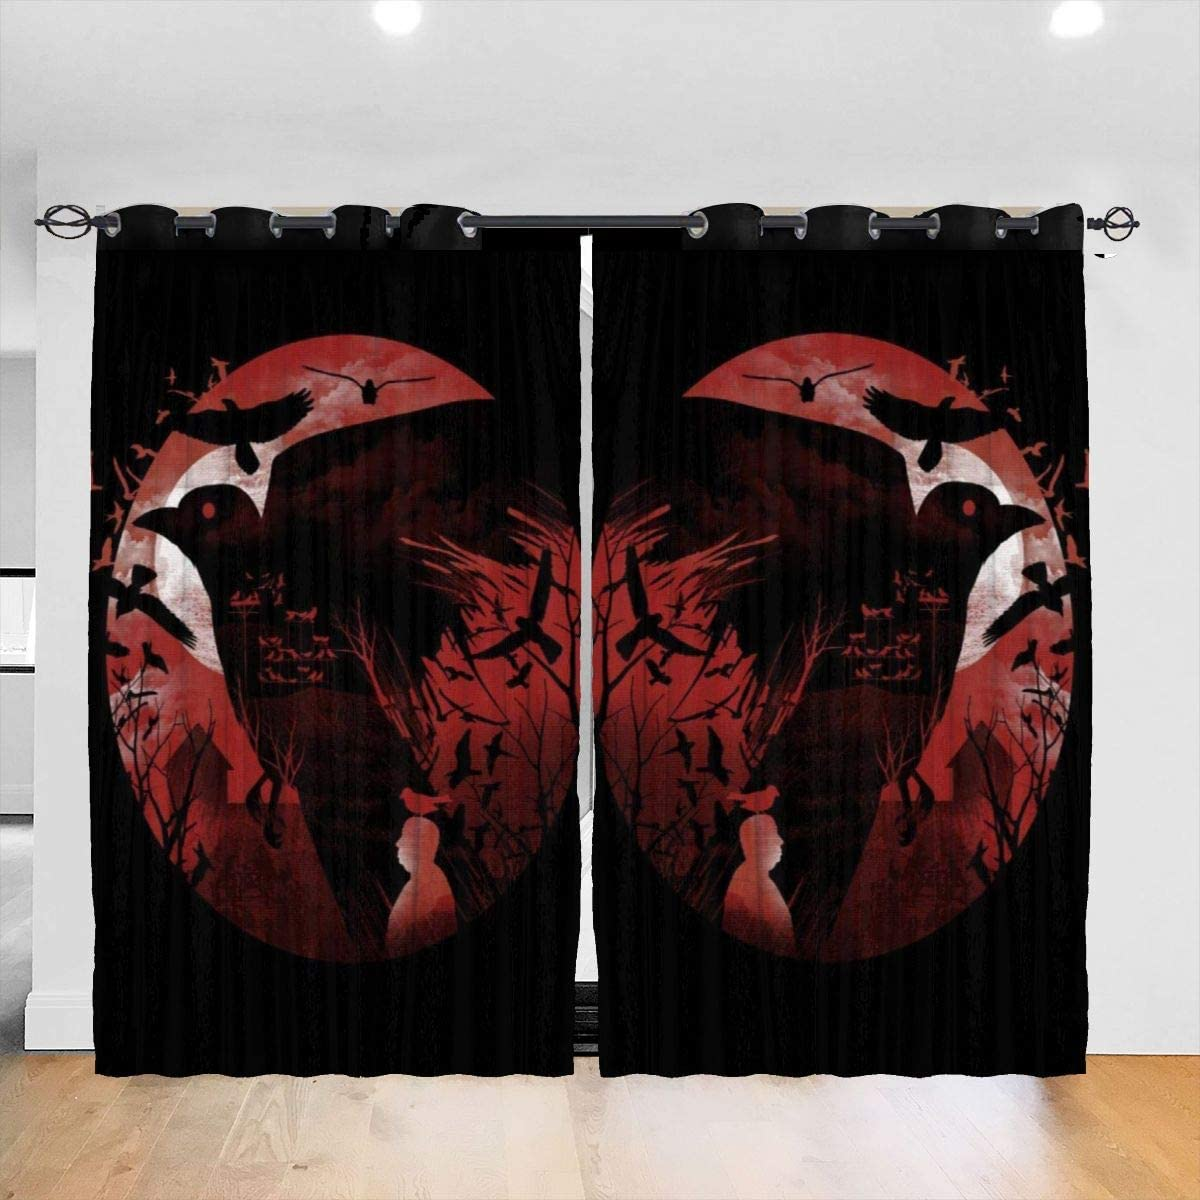 FDASLJ Customized Blackout Window Curtains Alfred Hitchcock Silhouette The Birds Grommet Thermal Insulated Room Darkening Drape for Bedroom Living Room 52 X 72 Inch, 2 Panels